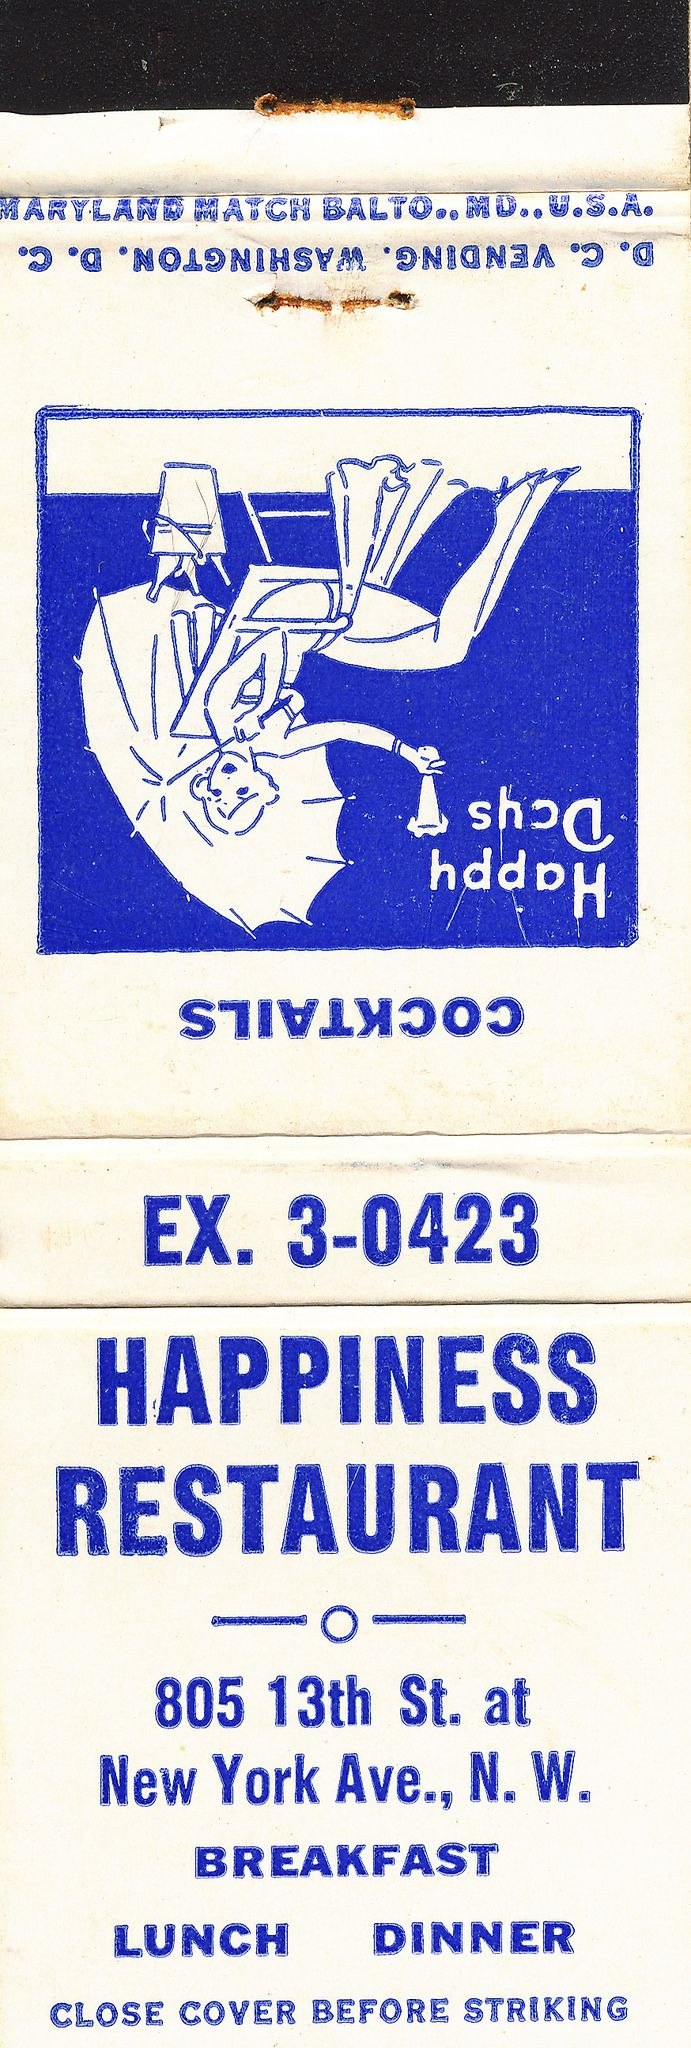 """https://flic.kr/p/RBwKRX 